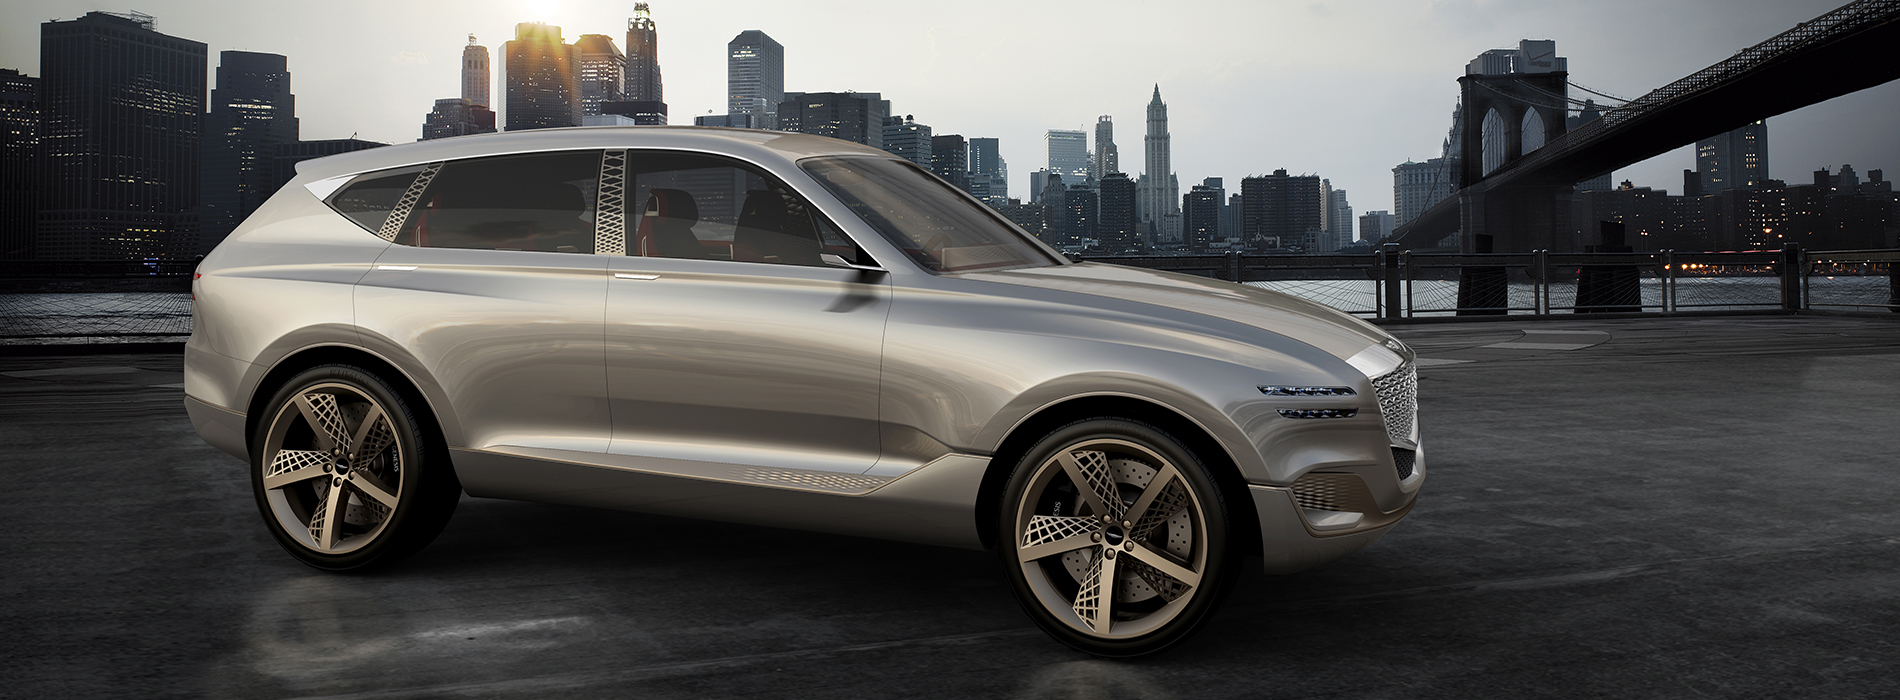 Genesis Reveals Fuel Cell Concept Suv At New York